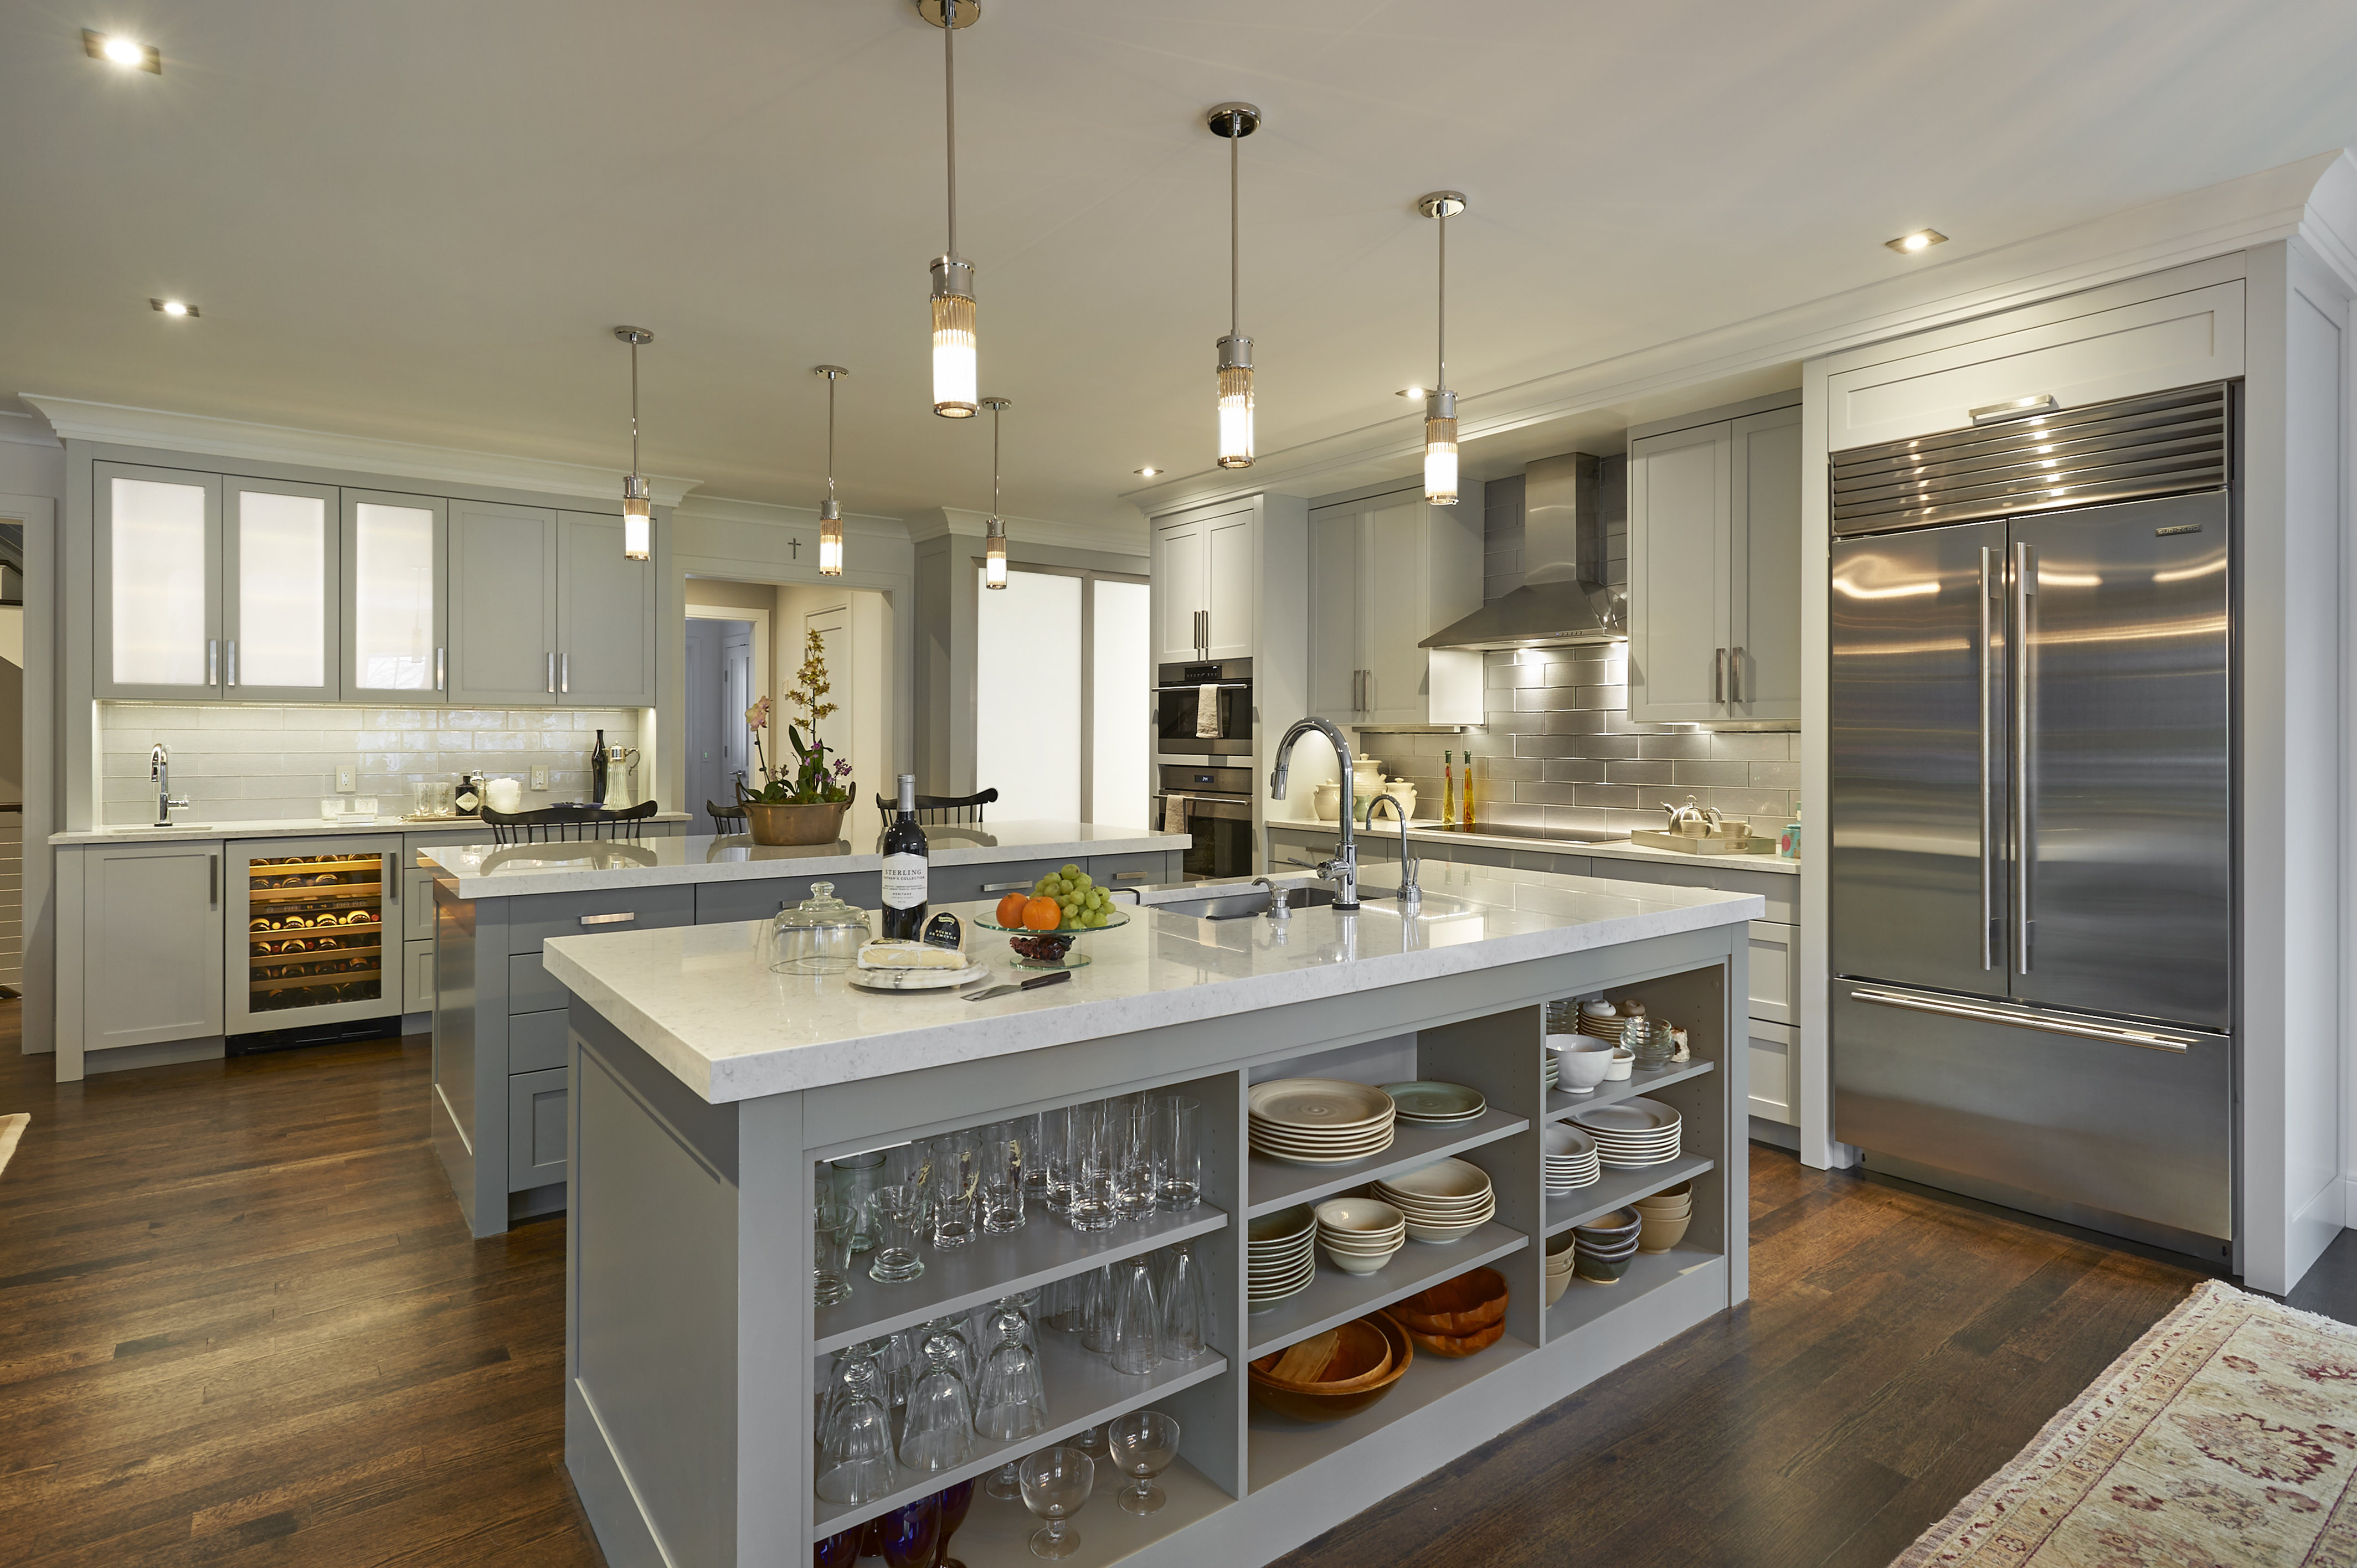 Front Row Kitchens Wins Second Place In Kitchen Design Contest ...